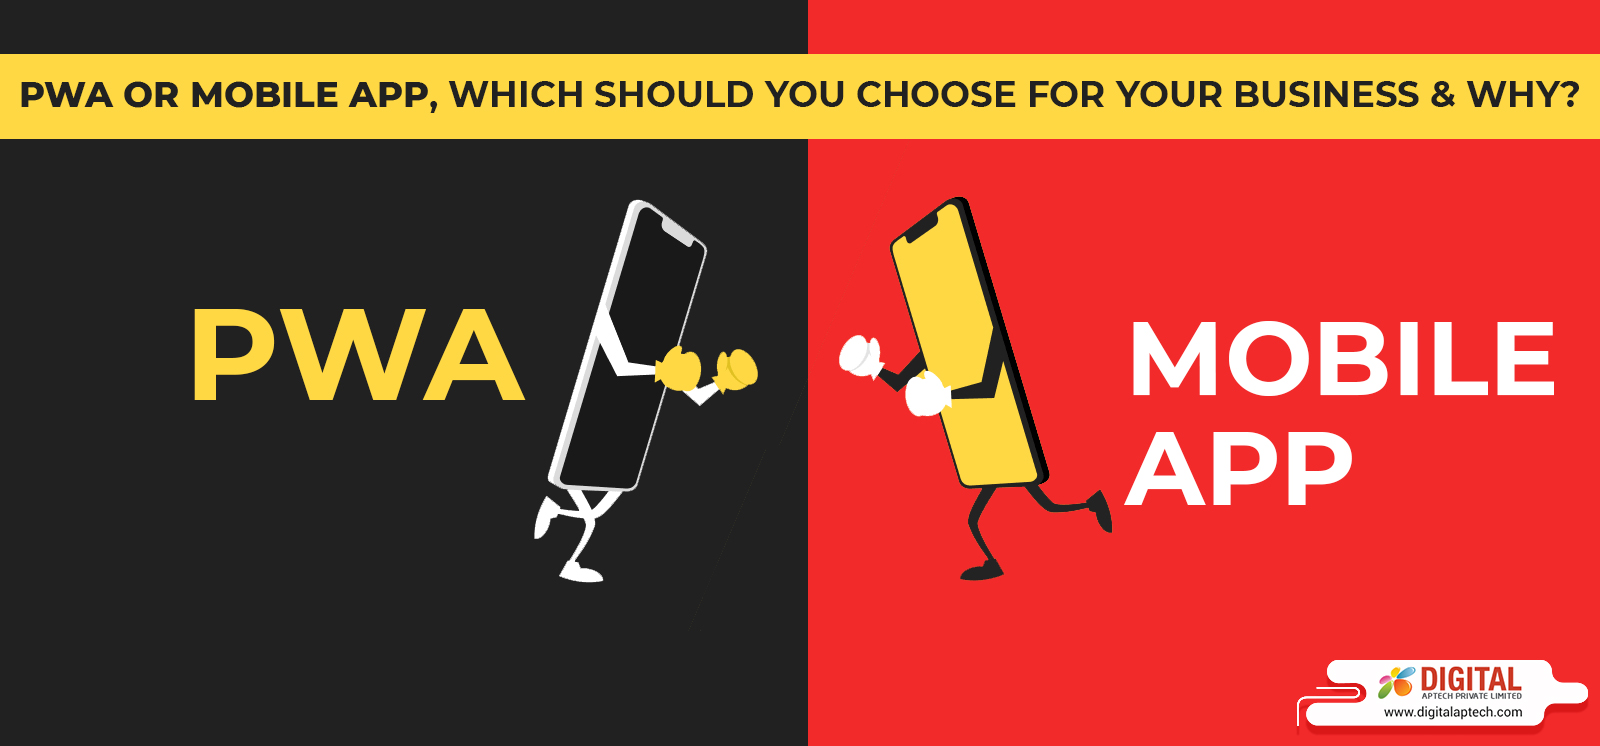 PWA or Mobile App, Which Should You Choose for Your Business & Why?